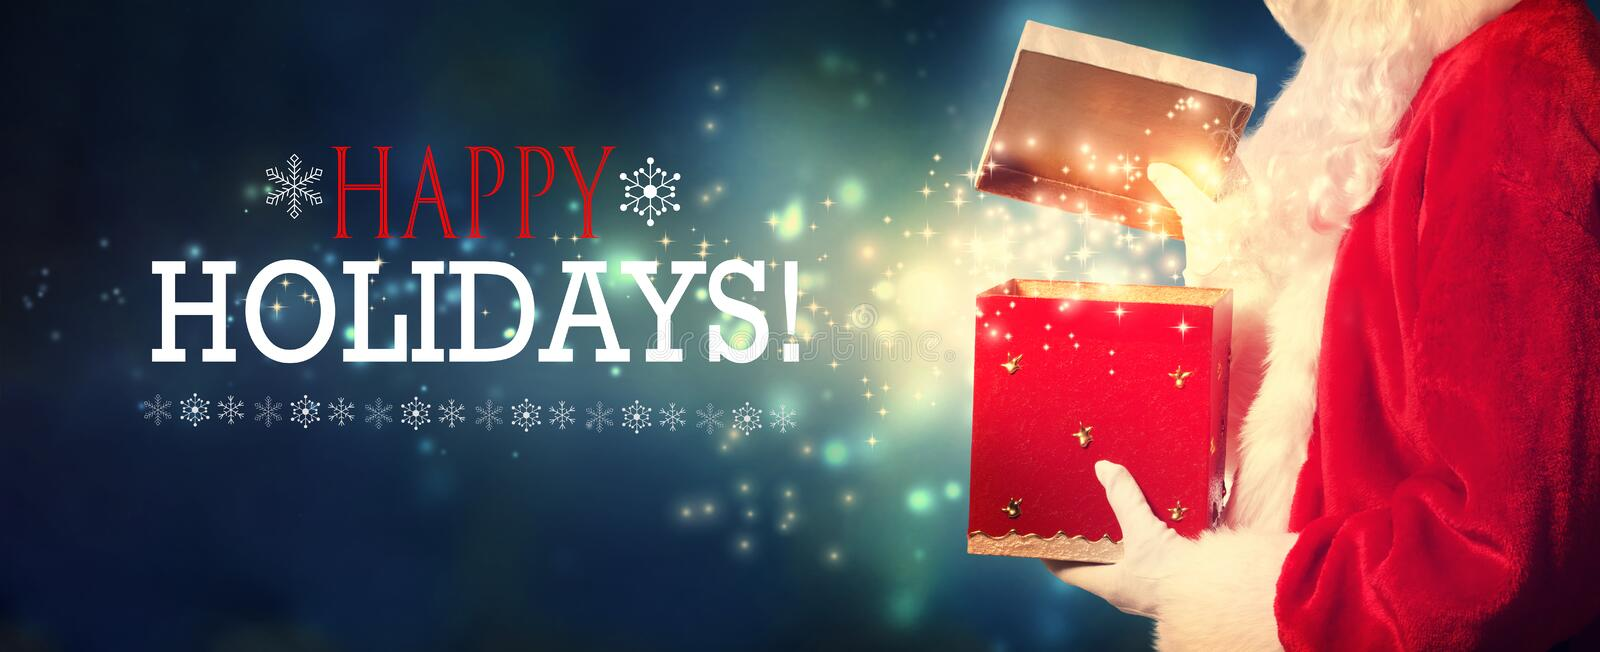 Happy holidays message with Santa opening a gift box stock photos